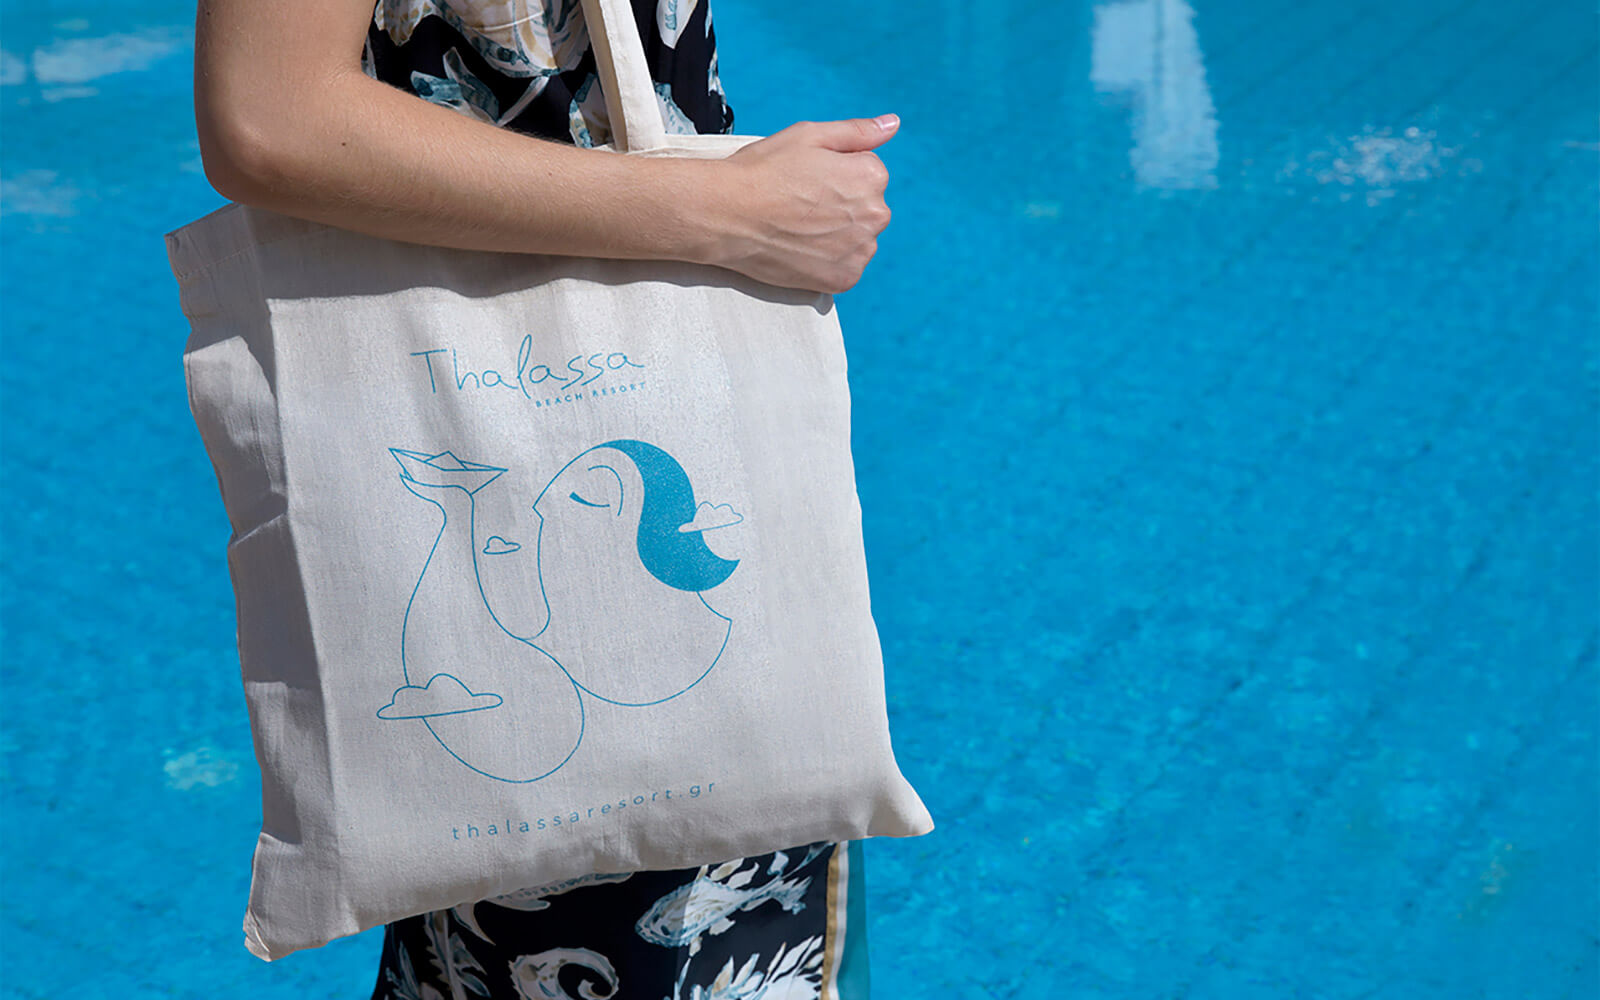 Woman holding bag with thalassa brand